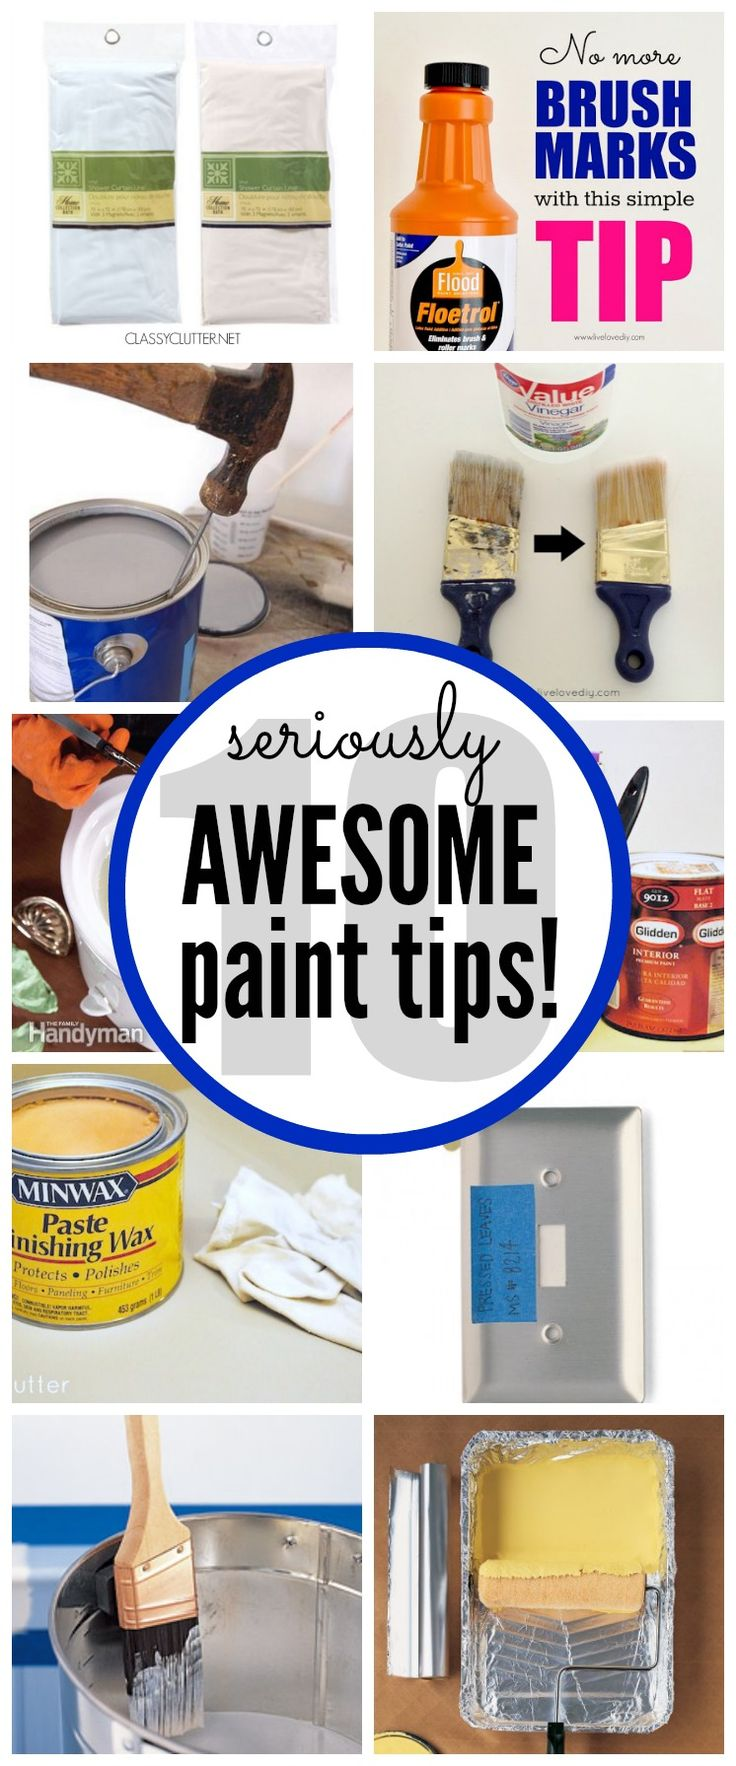 10 seriously awesome Painting Tips  Tricks that are borderline genius! | www.classyclutter.net   follow @classyclutter4 for loads od great diy!